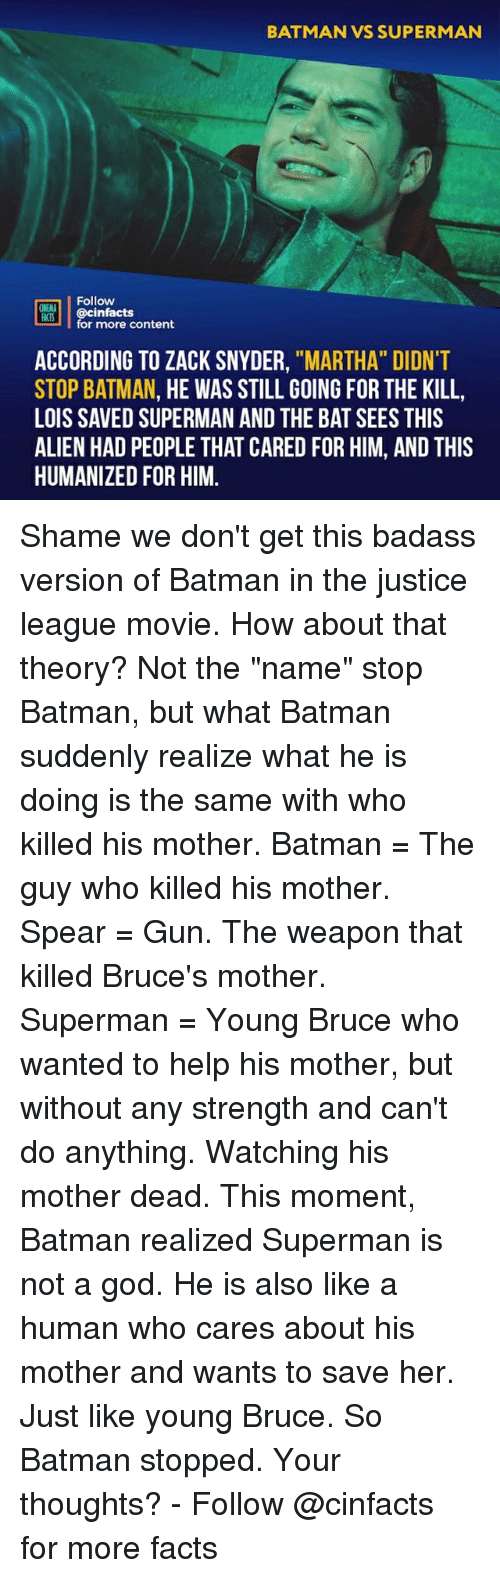 """Batman, Facts, and God: BATMAN VS SUPERMAN  Follow  ONEANA  @cinfacts  for more content  ACCORDING TO ZACK SNYDER, """"MARTHA"""" DIDNT  STOP BATMAN, HE WAS STILL GOING FOR THE KILL,  LOIS SAVED SUPERMAN AND THE BAT SEES THIS  ALIEN HAD PEOPLE THAT CARED FOR HIM, AND THIS  HUMANIZED FOR HIM. Shame we don't get this badass version of Batman in the justice league movie. How about that theory? Not the """"name"""" stop Batman, but what Batman suddenly realize what he is doing is the same with who killed his mother. Batman = The guy who killed his mother. Spear = Gun. The weapon that killed Bruce's mother. Superman = Young Bruce who wanted to help his mother, but without any strength and can't do anything. Watching his mother dead. This moment, Batman realized Superman is not a god. He is also like a human who cares about his mother and wants to save her. Just like young Bruce. So Batman stopped. Your thoughts?⠀ -⠀⠀ Follow @cinfacts for more facts"""